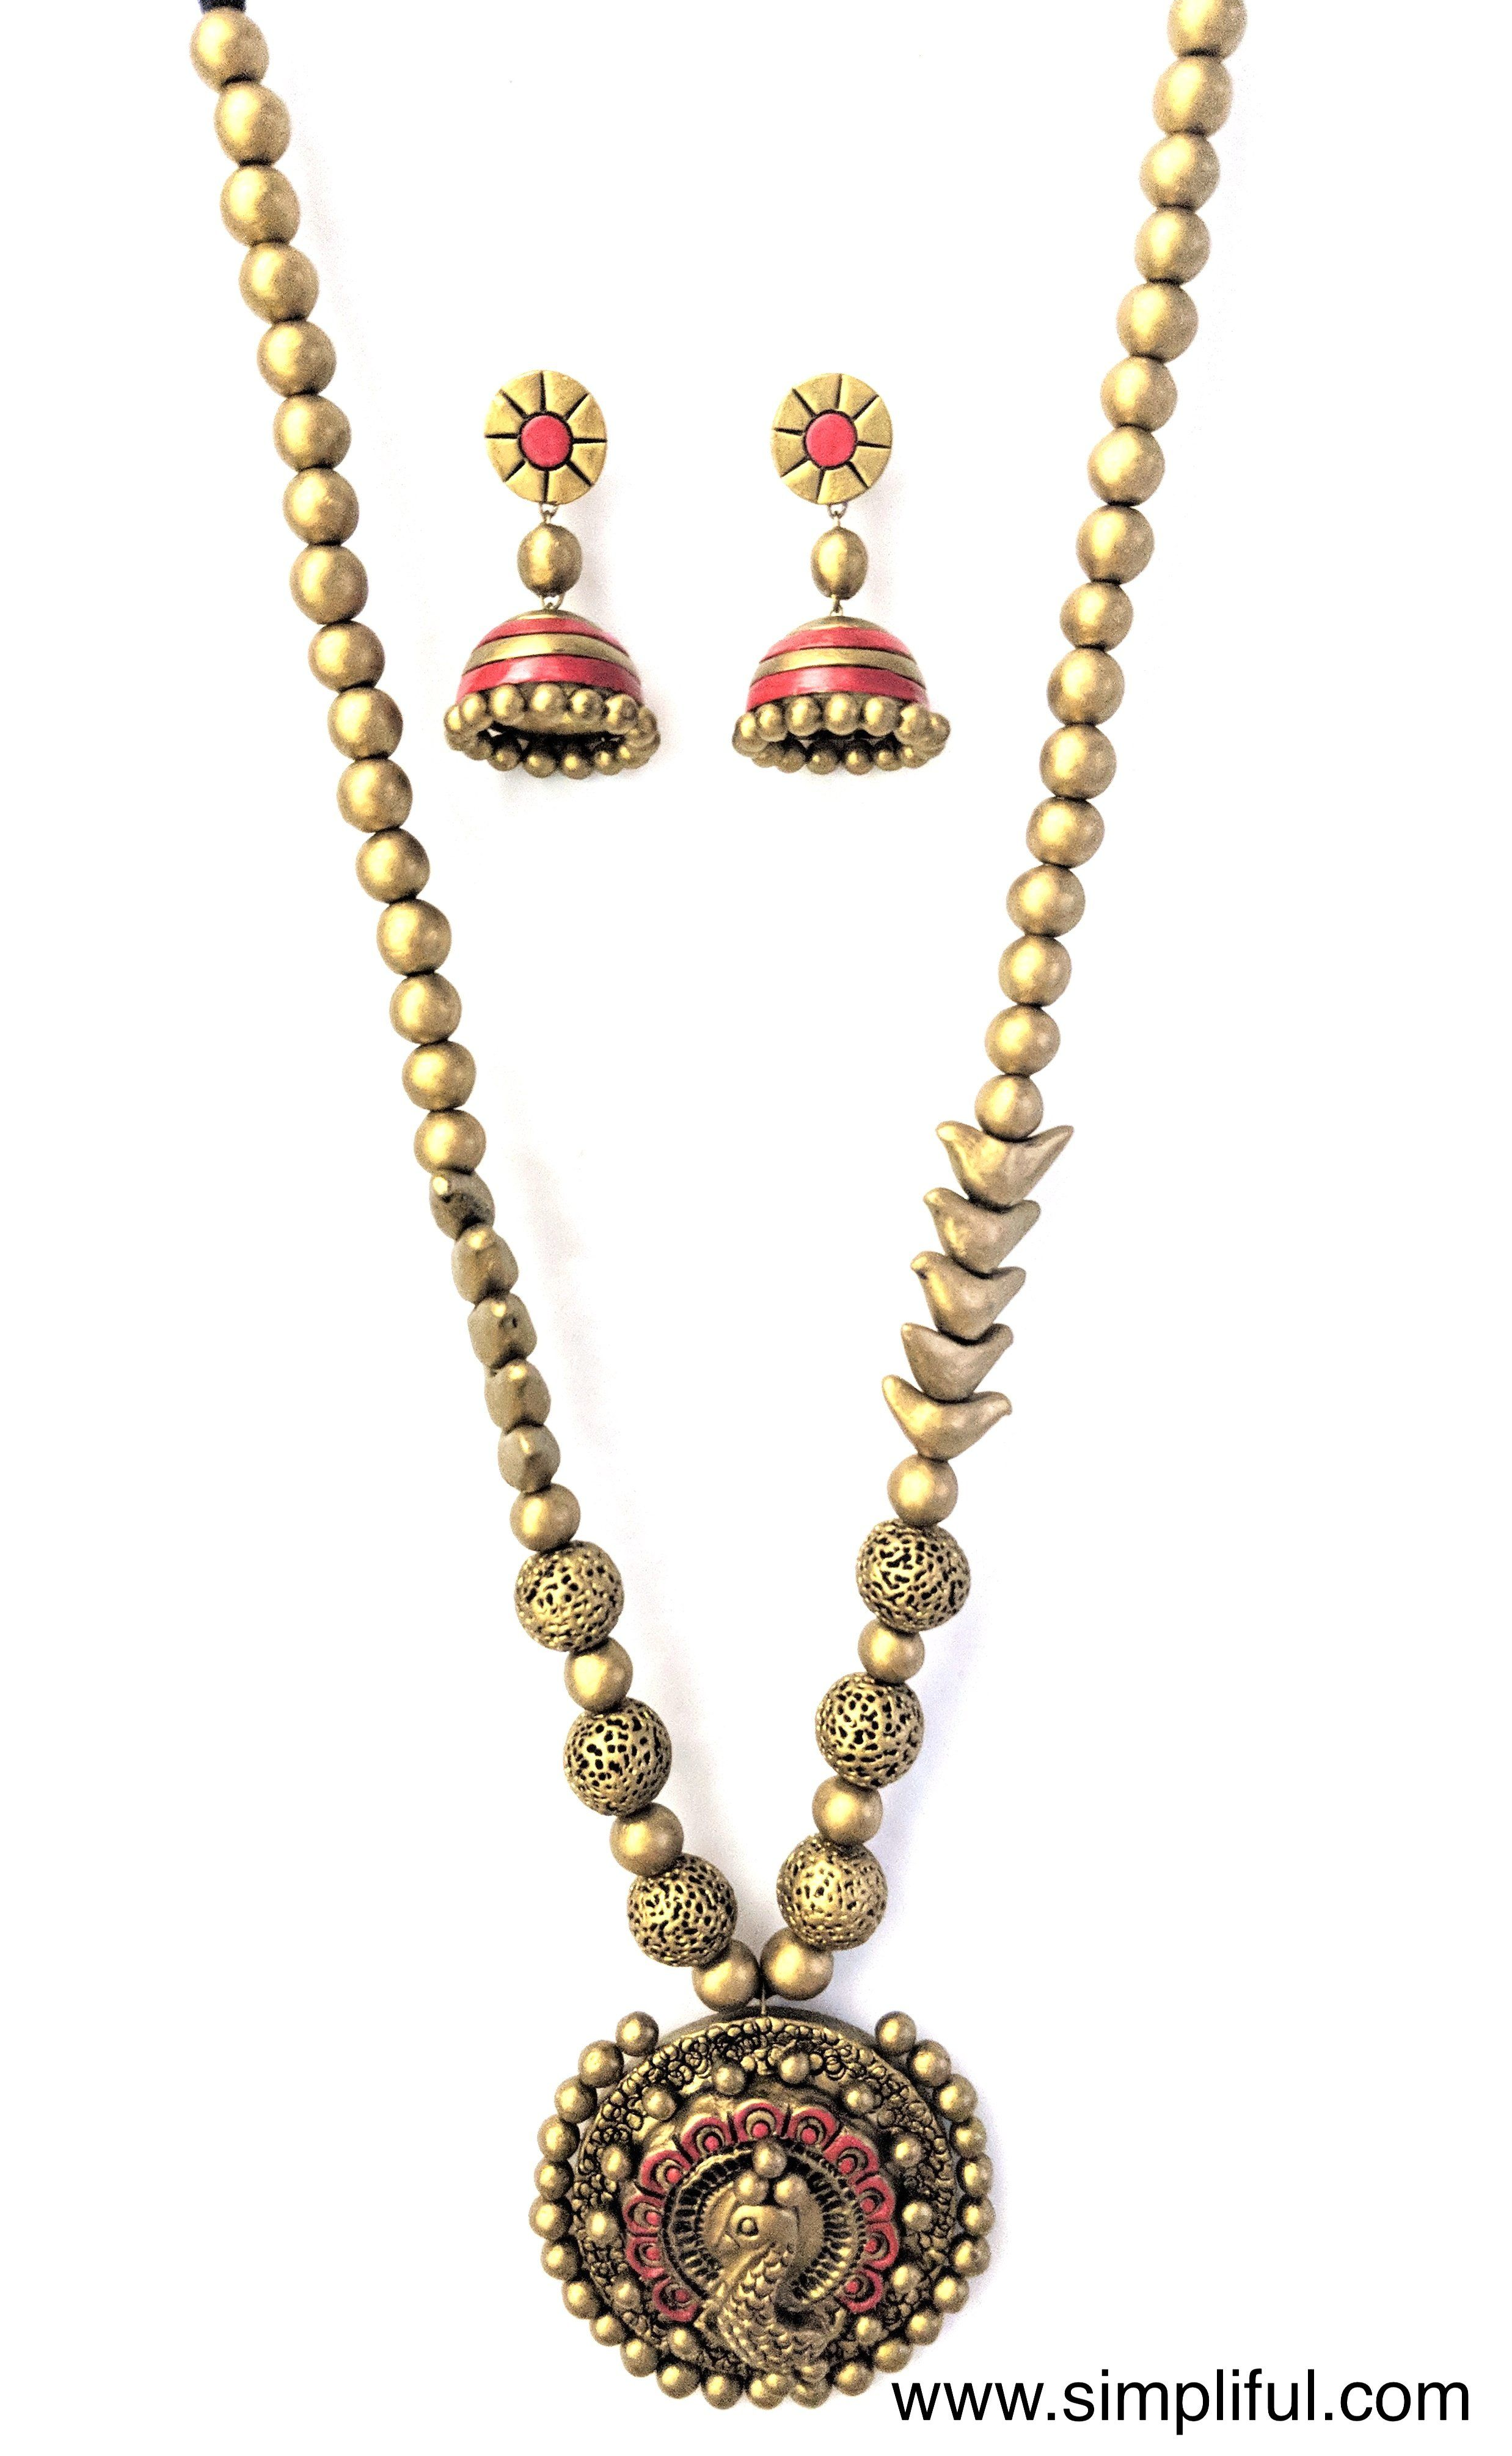 Unique Handmade Terracotta Necklace And Earring Set Please Allow Slight